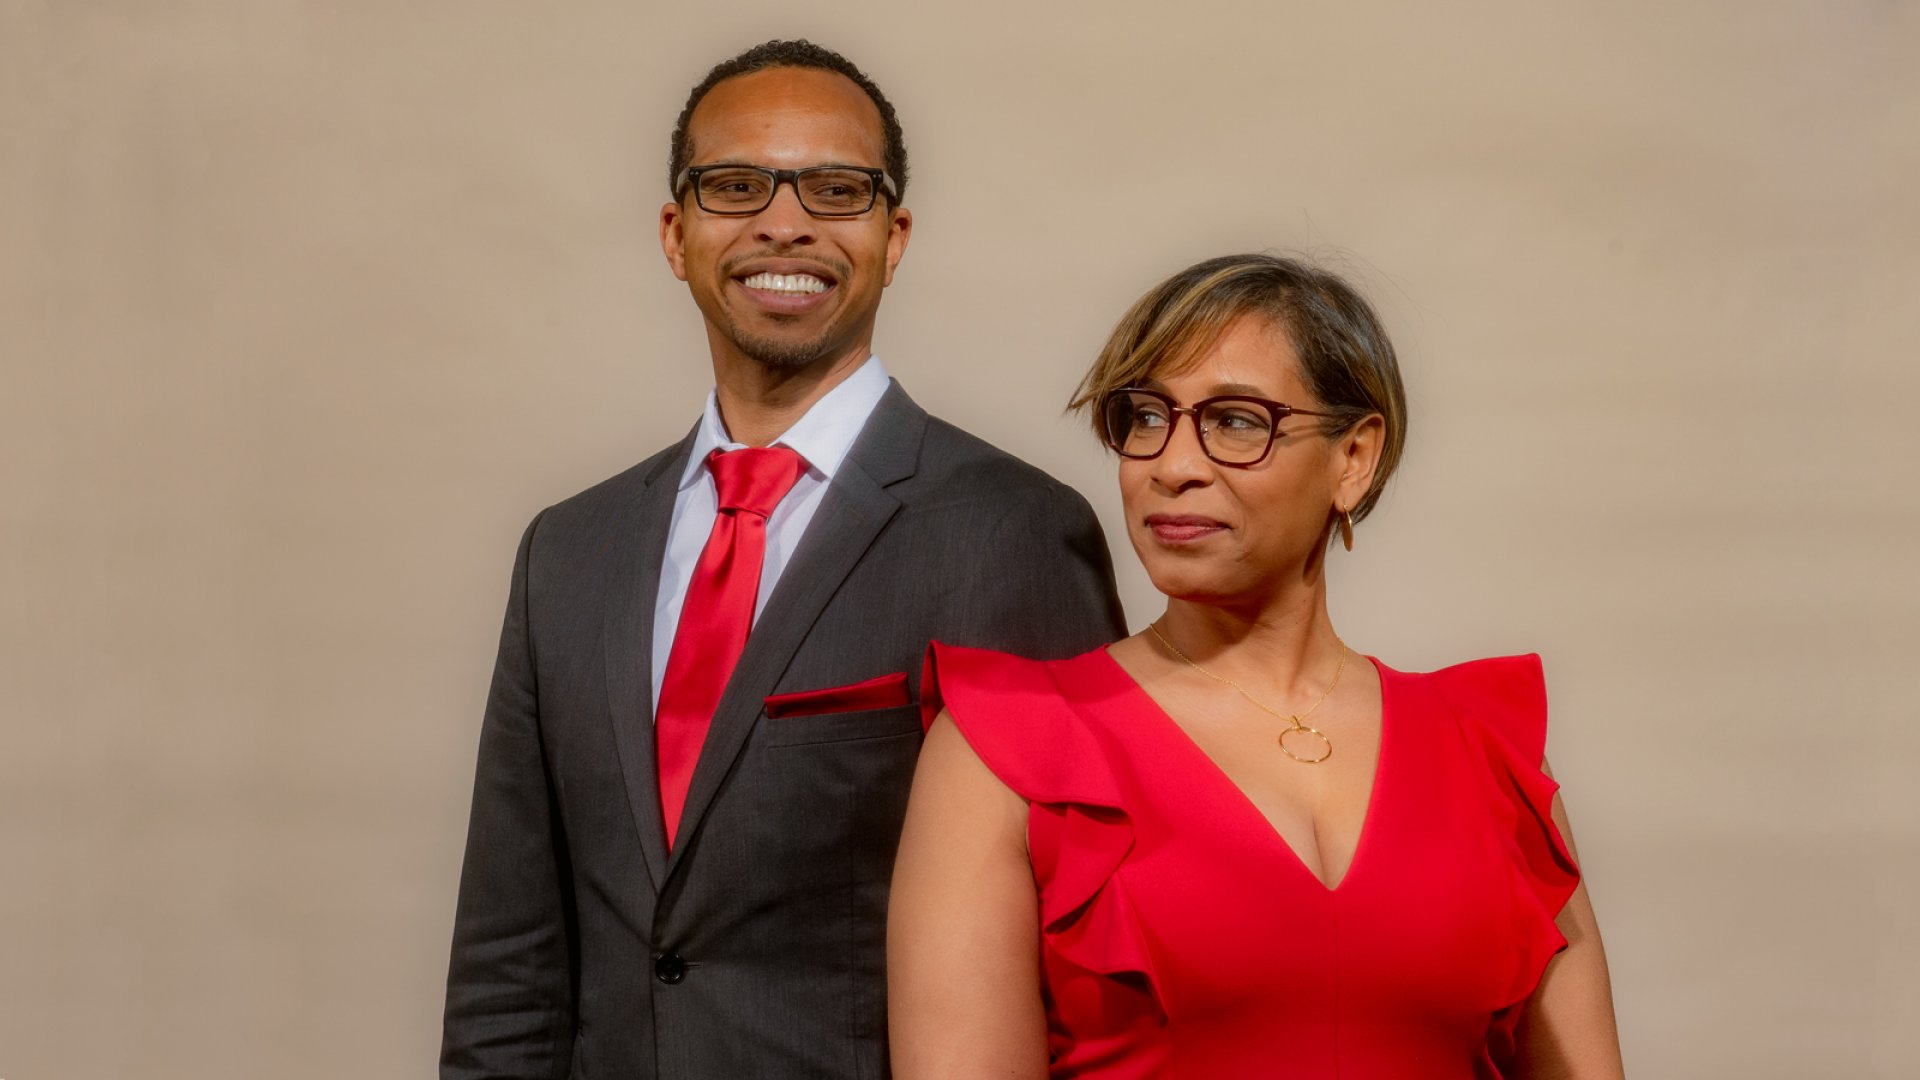 Biffrey Braxton (left) and Kimberly Citizen, co-founders of Applied Development.